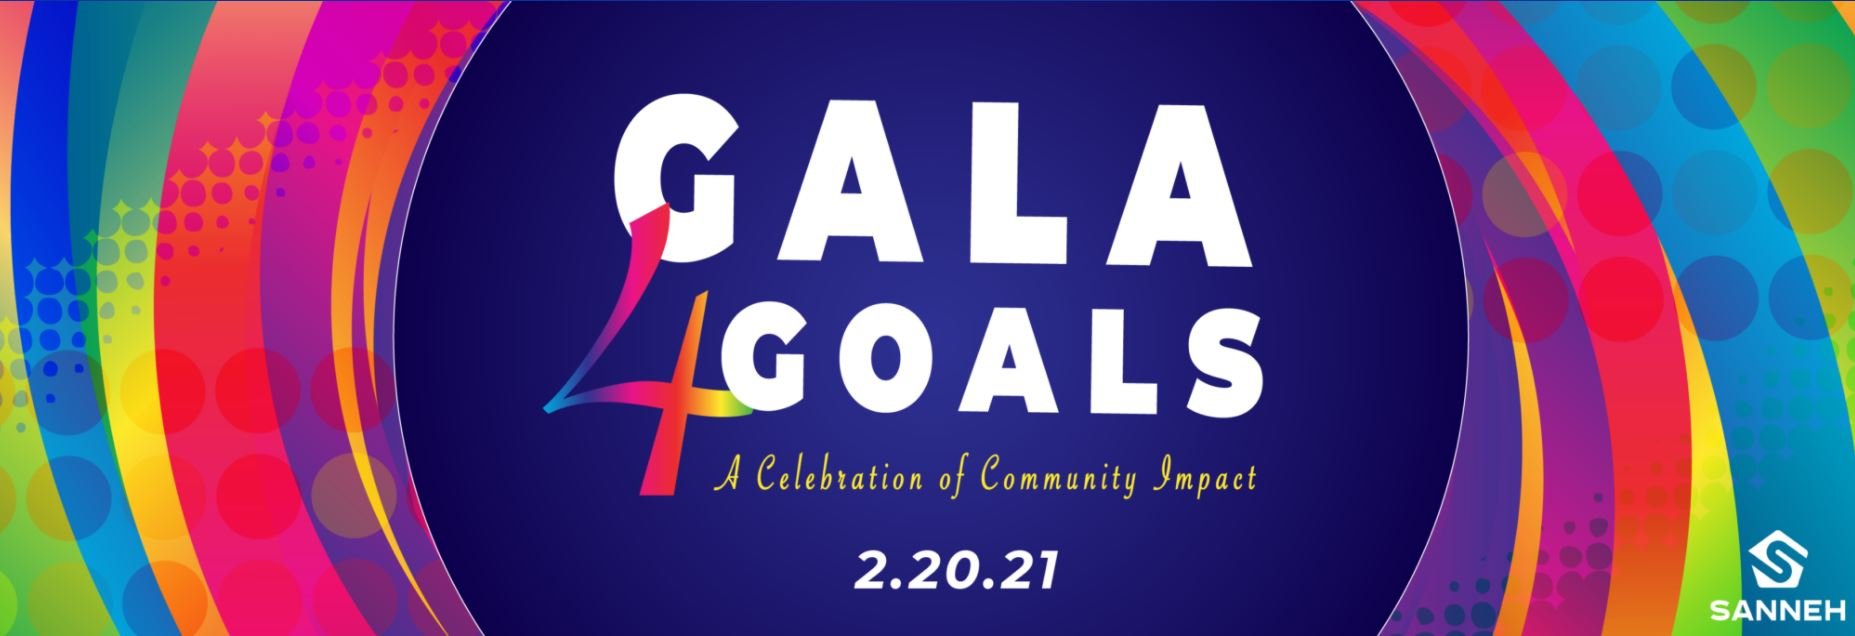 Event Promo Photo For Gala4Goals - 11th Annual Sanneh Foundation